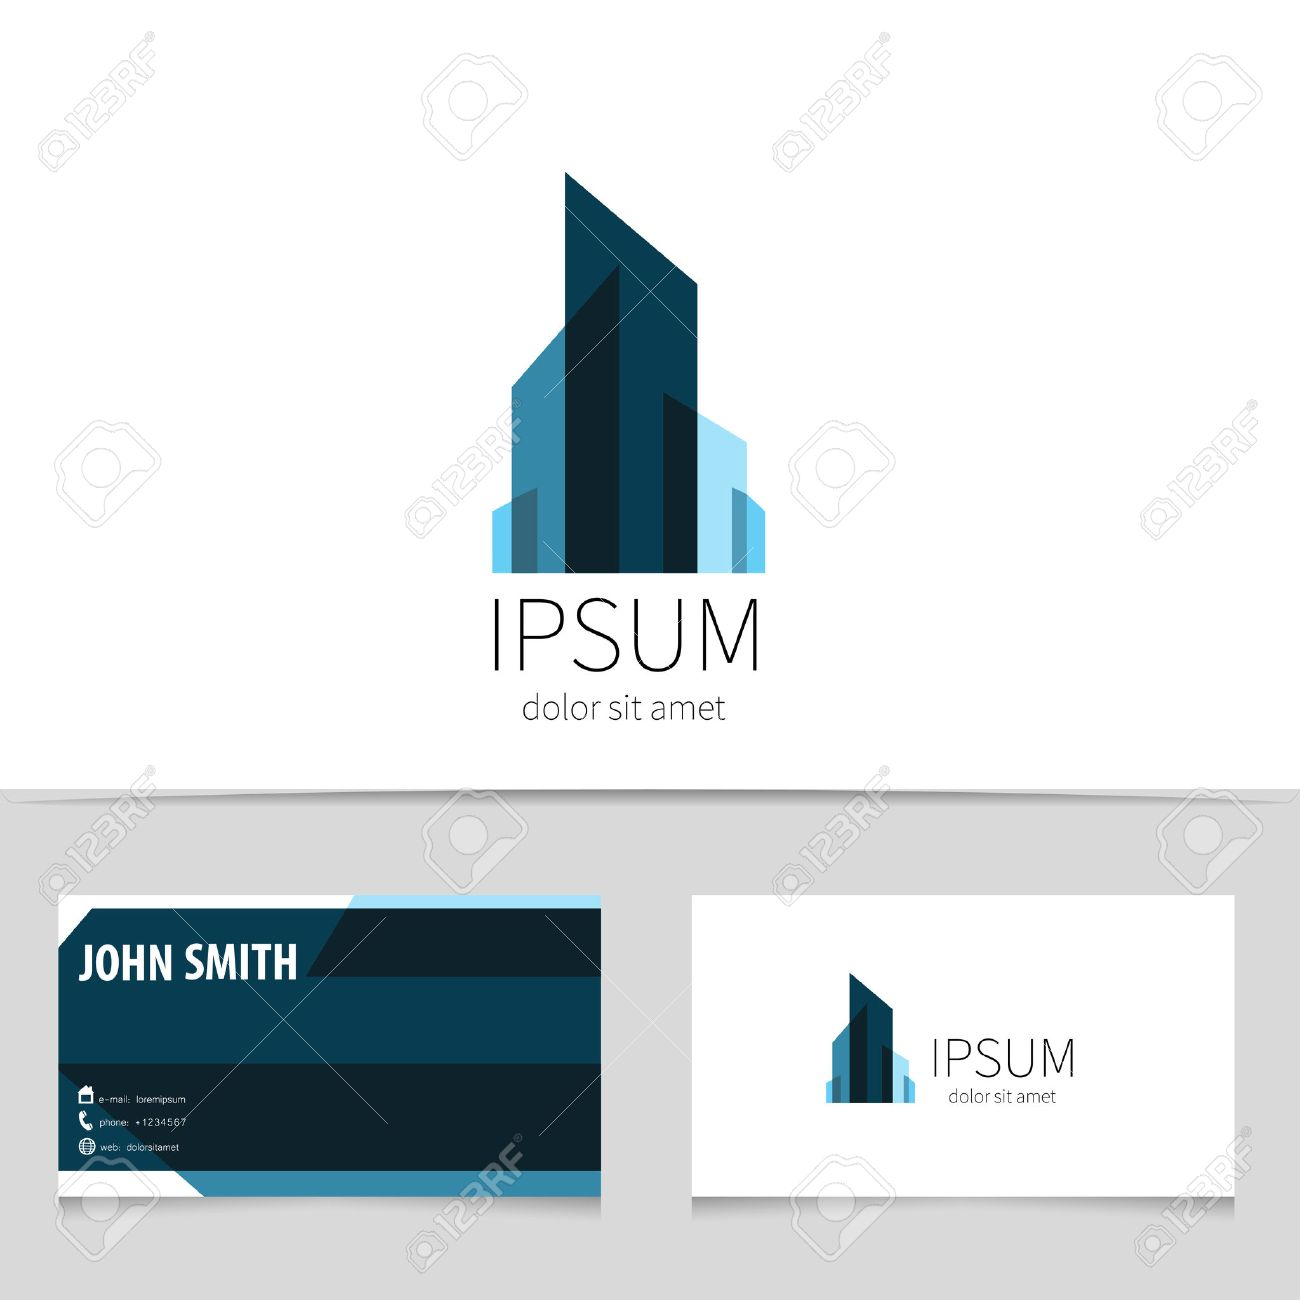 Creative Building Logo Design With Business Card Template. Trendy ...